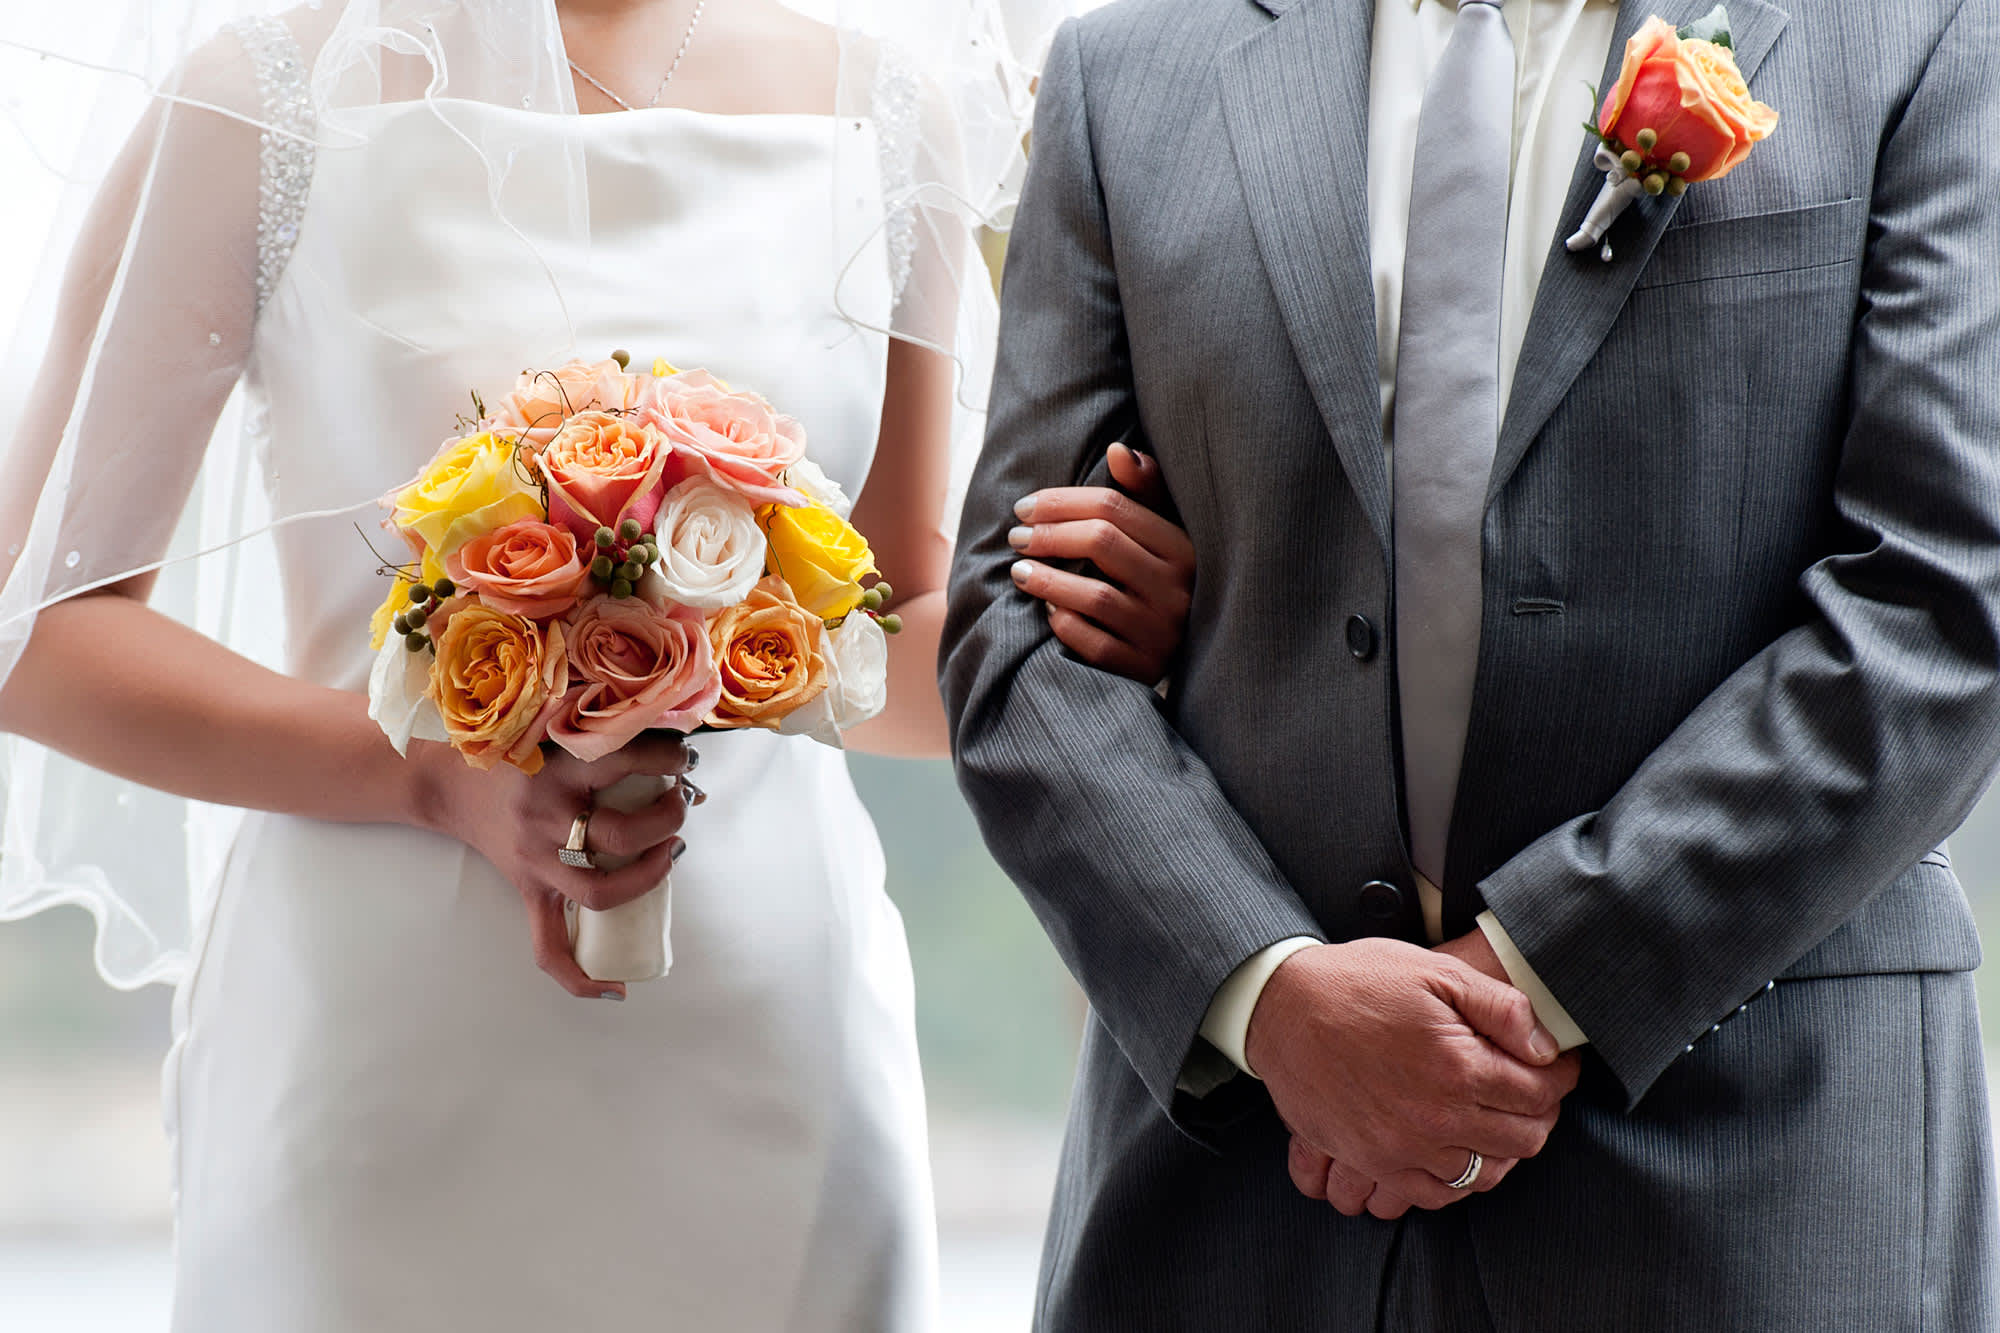 Wedding or new home? How to plan for both